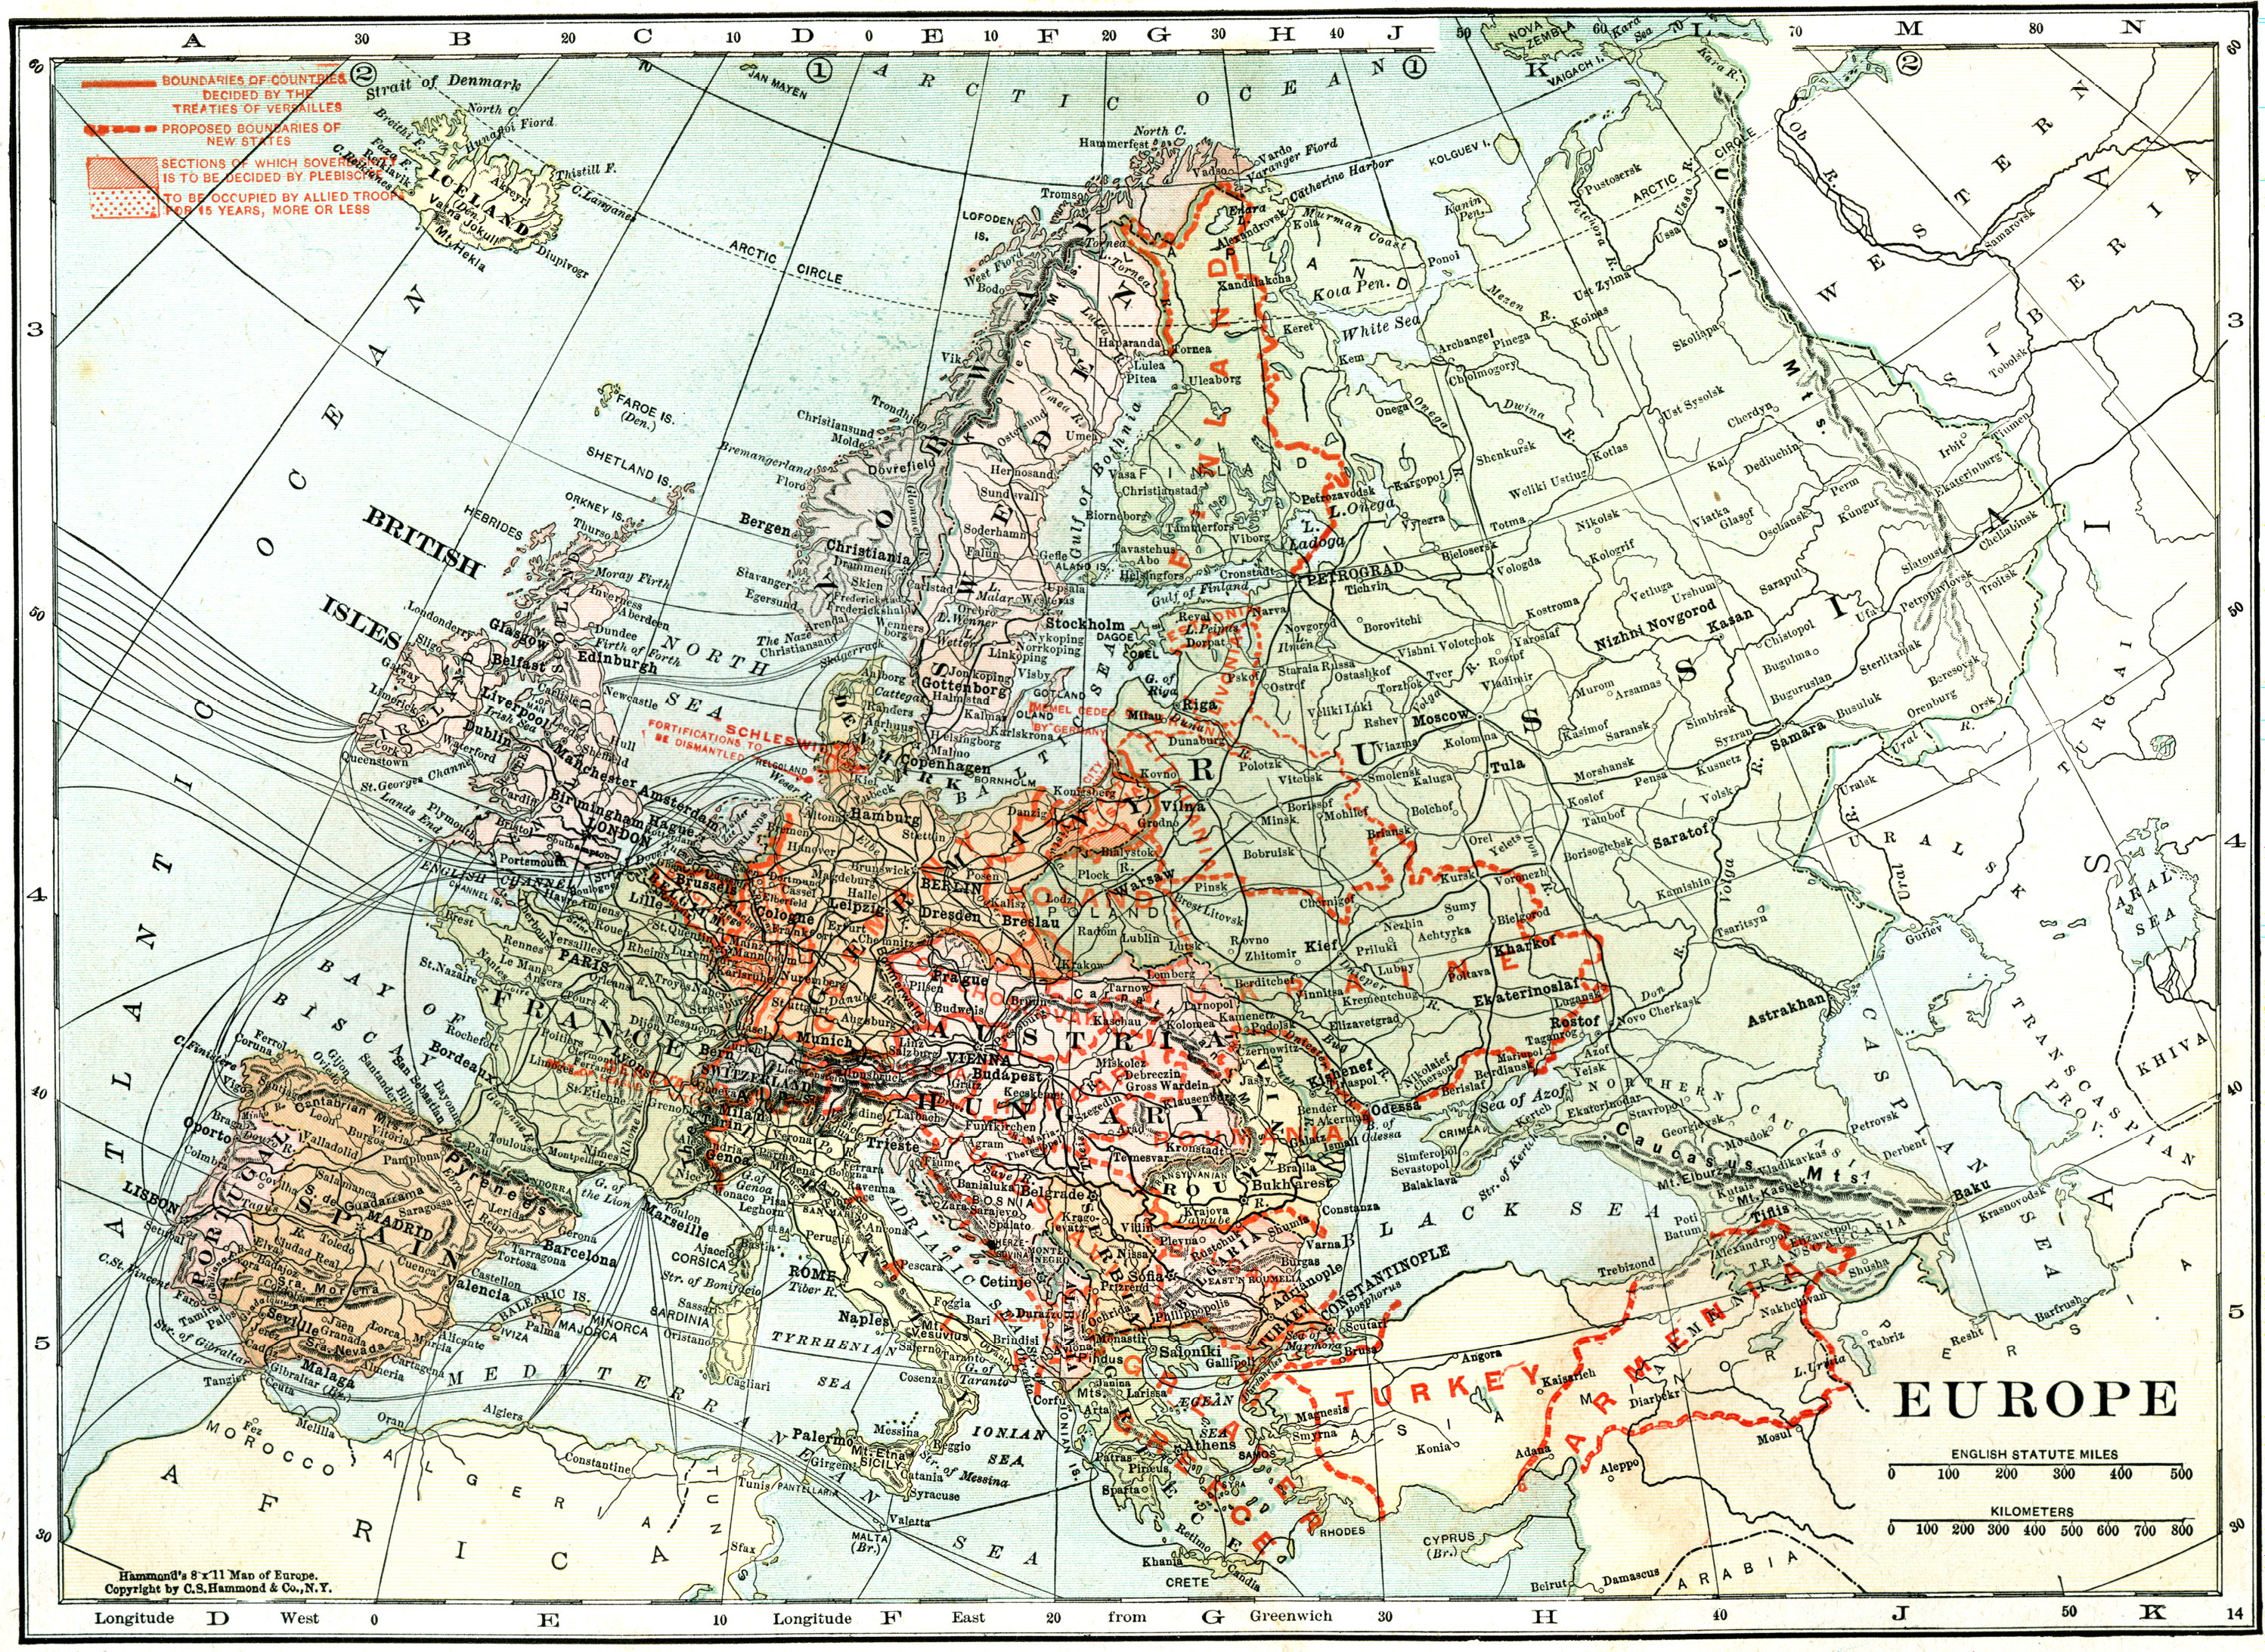 Paris On Europe Map.File Map Of Europe In 1920 After The Paris Peace Conference Jpg